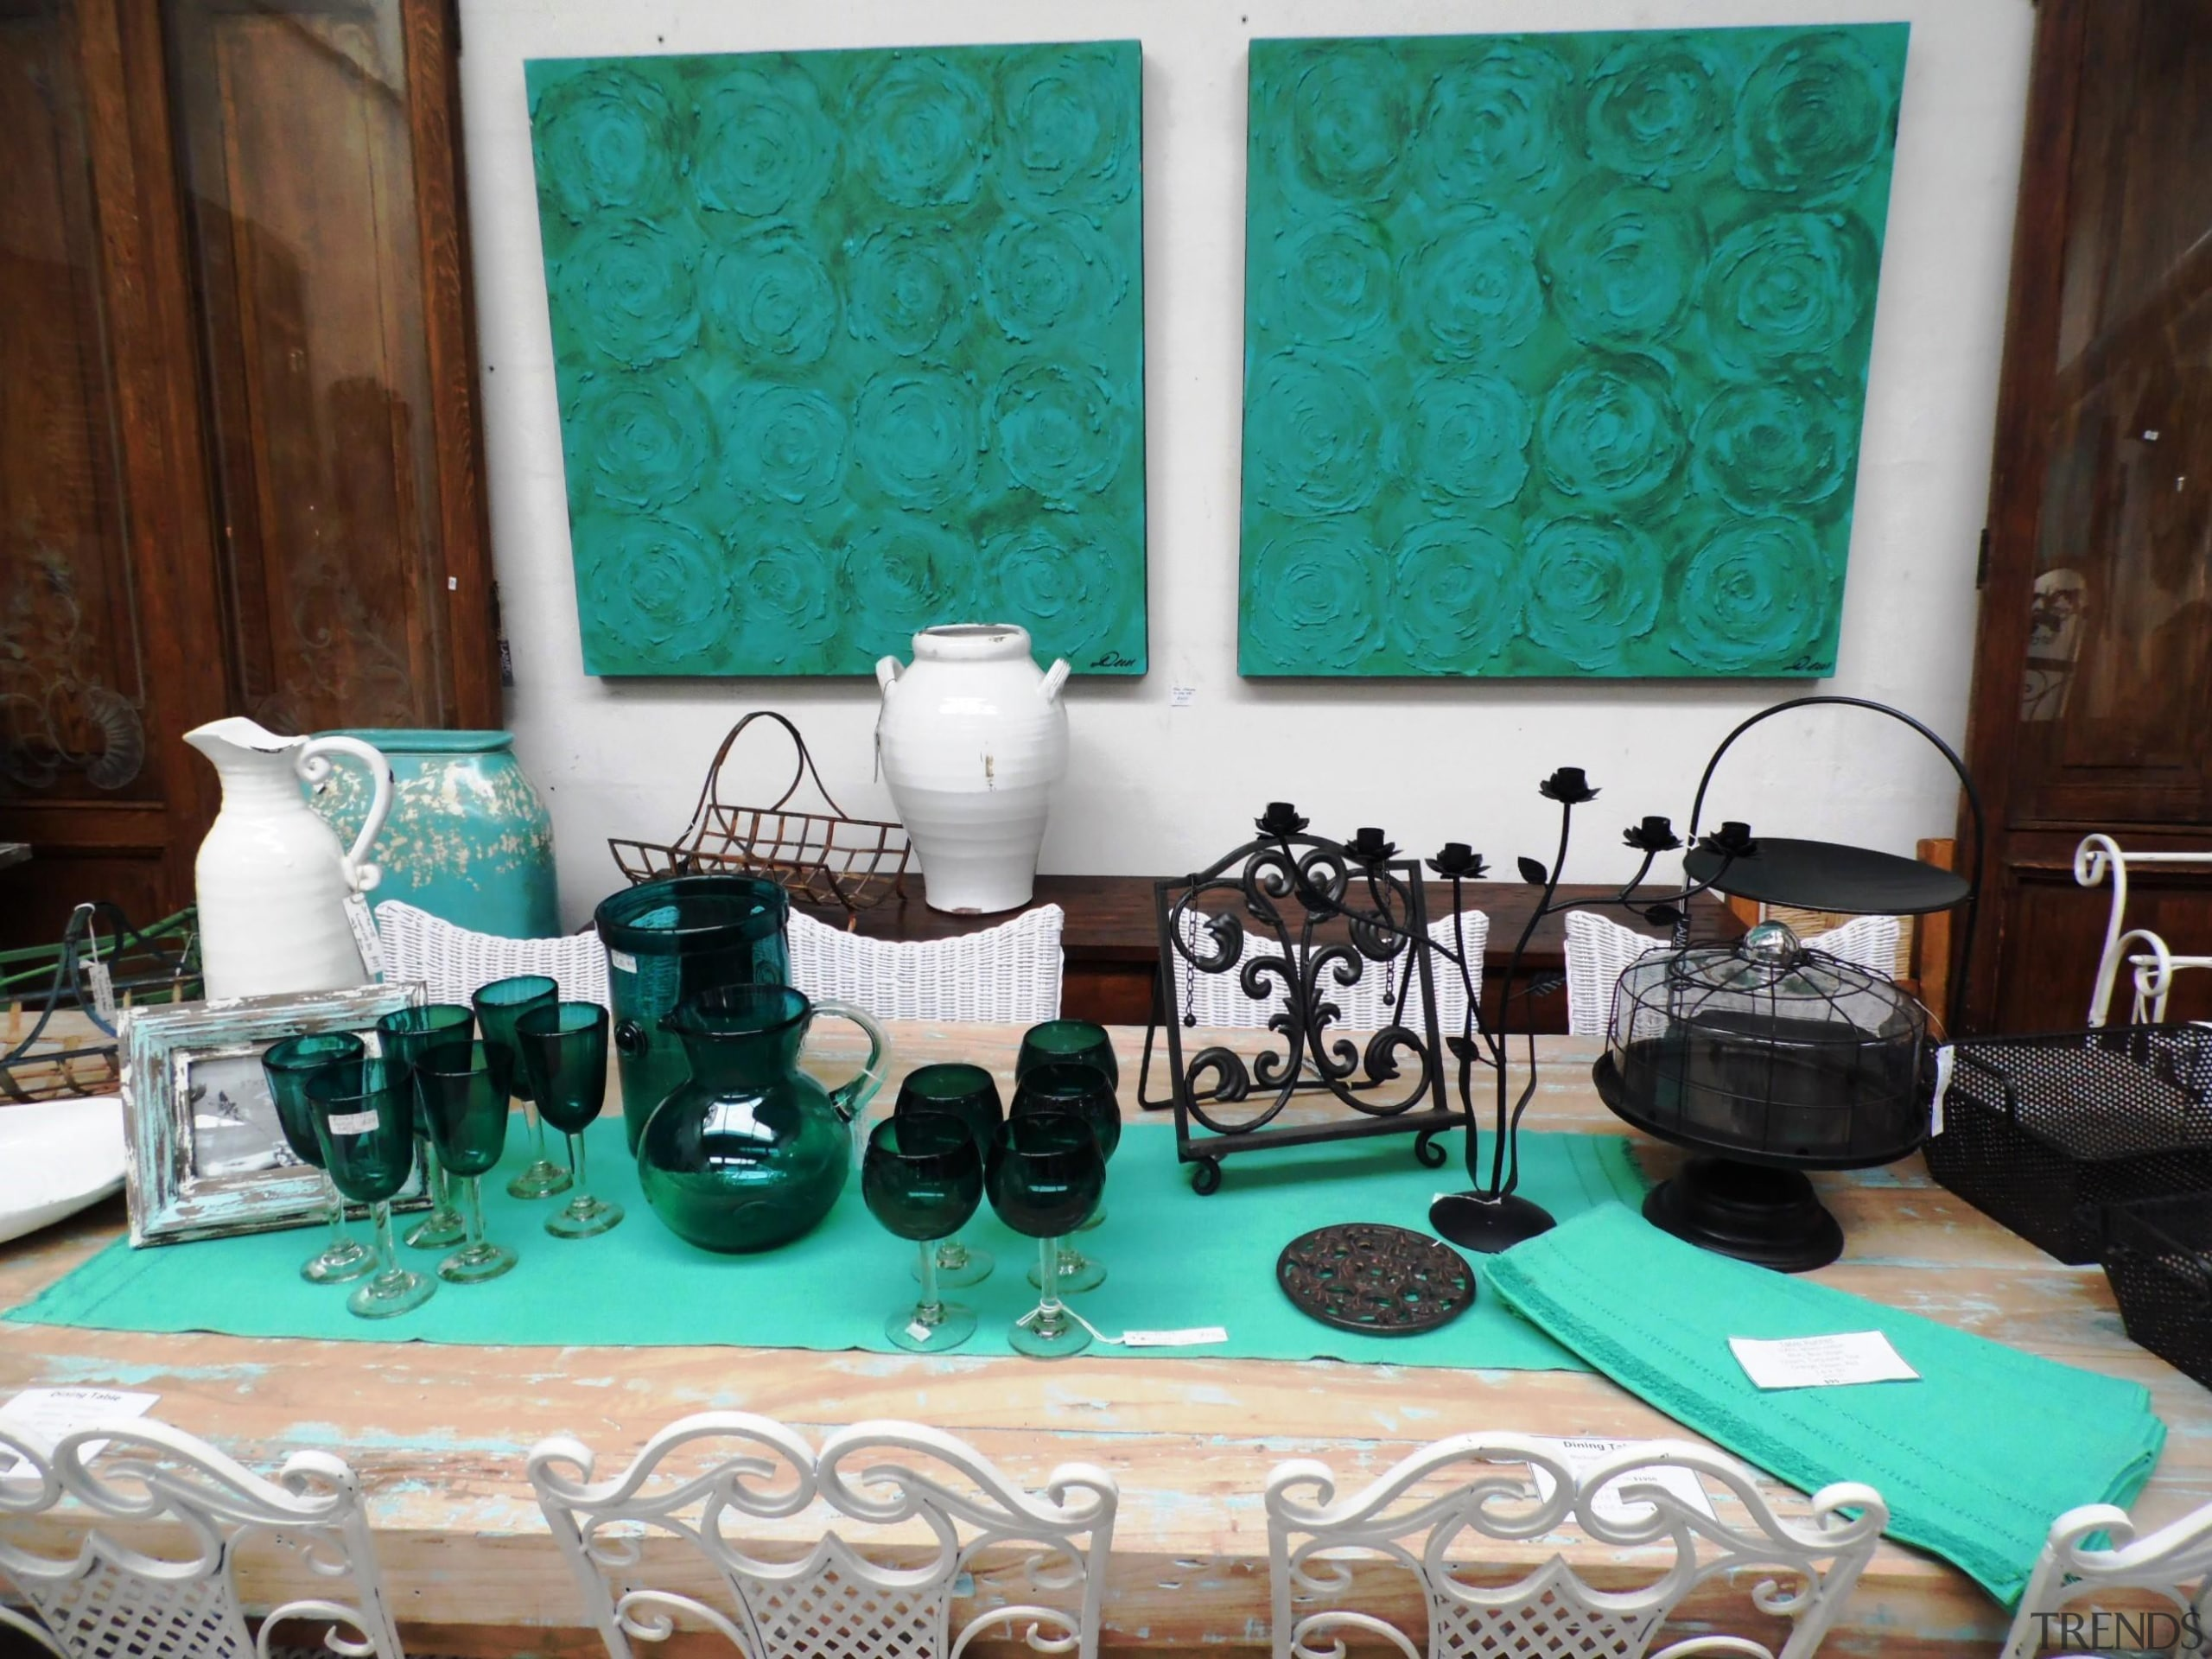 One of our favourite spreads, this combination of green, product, table, teal